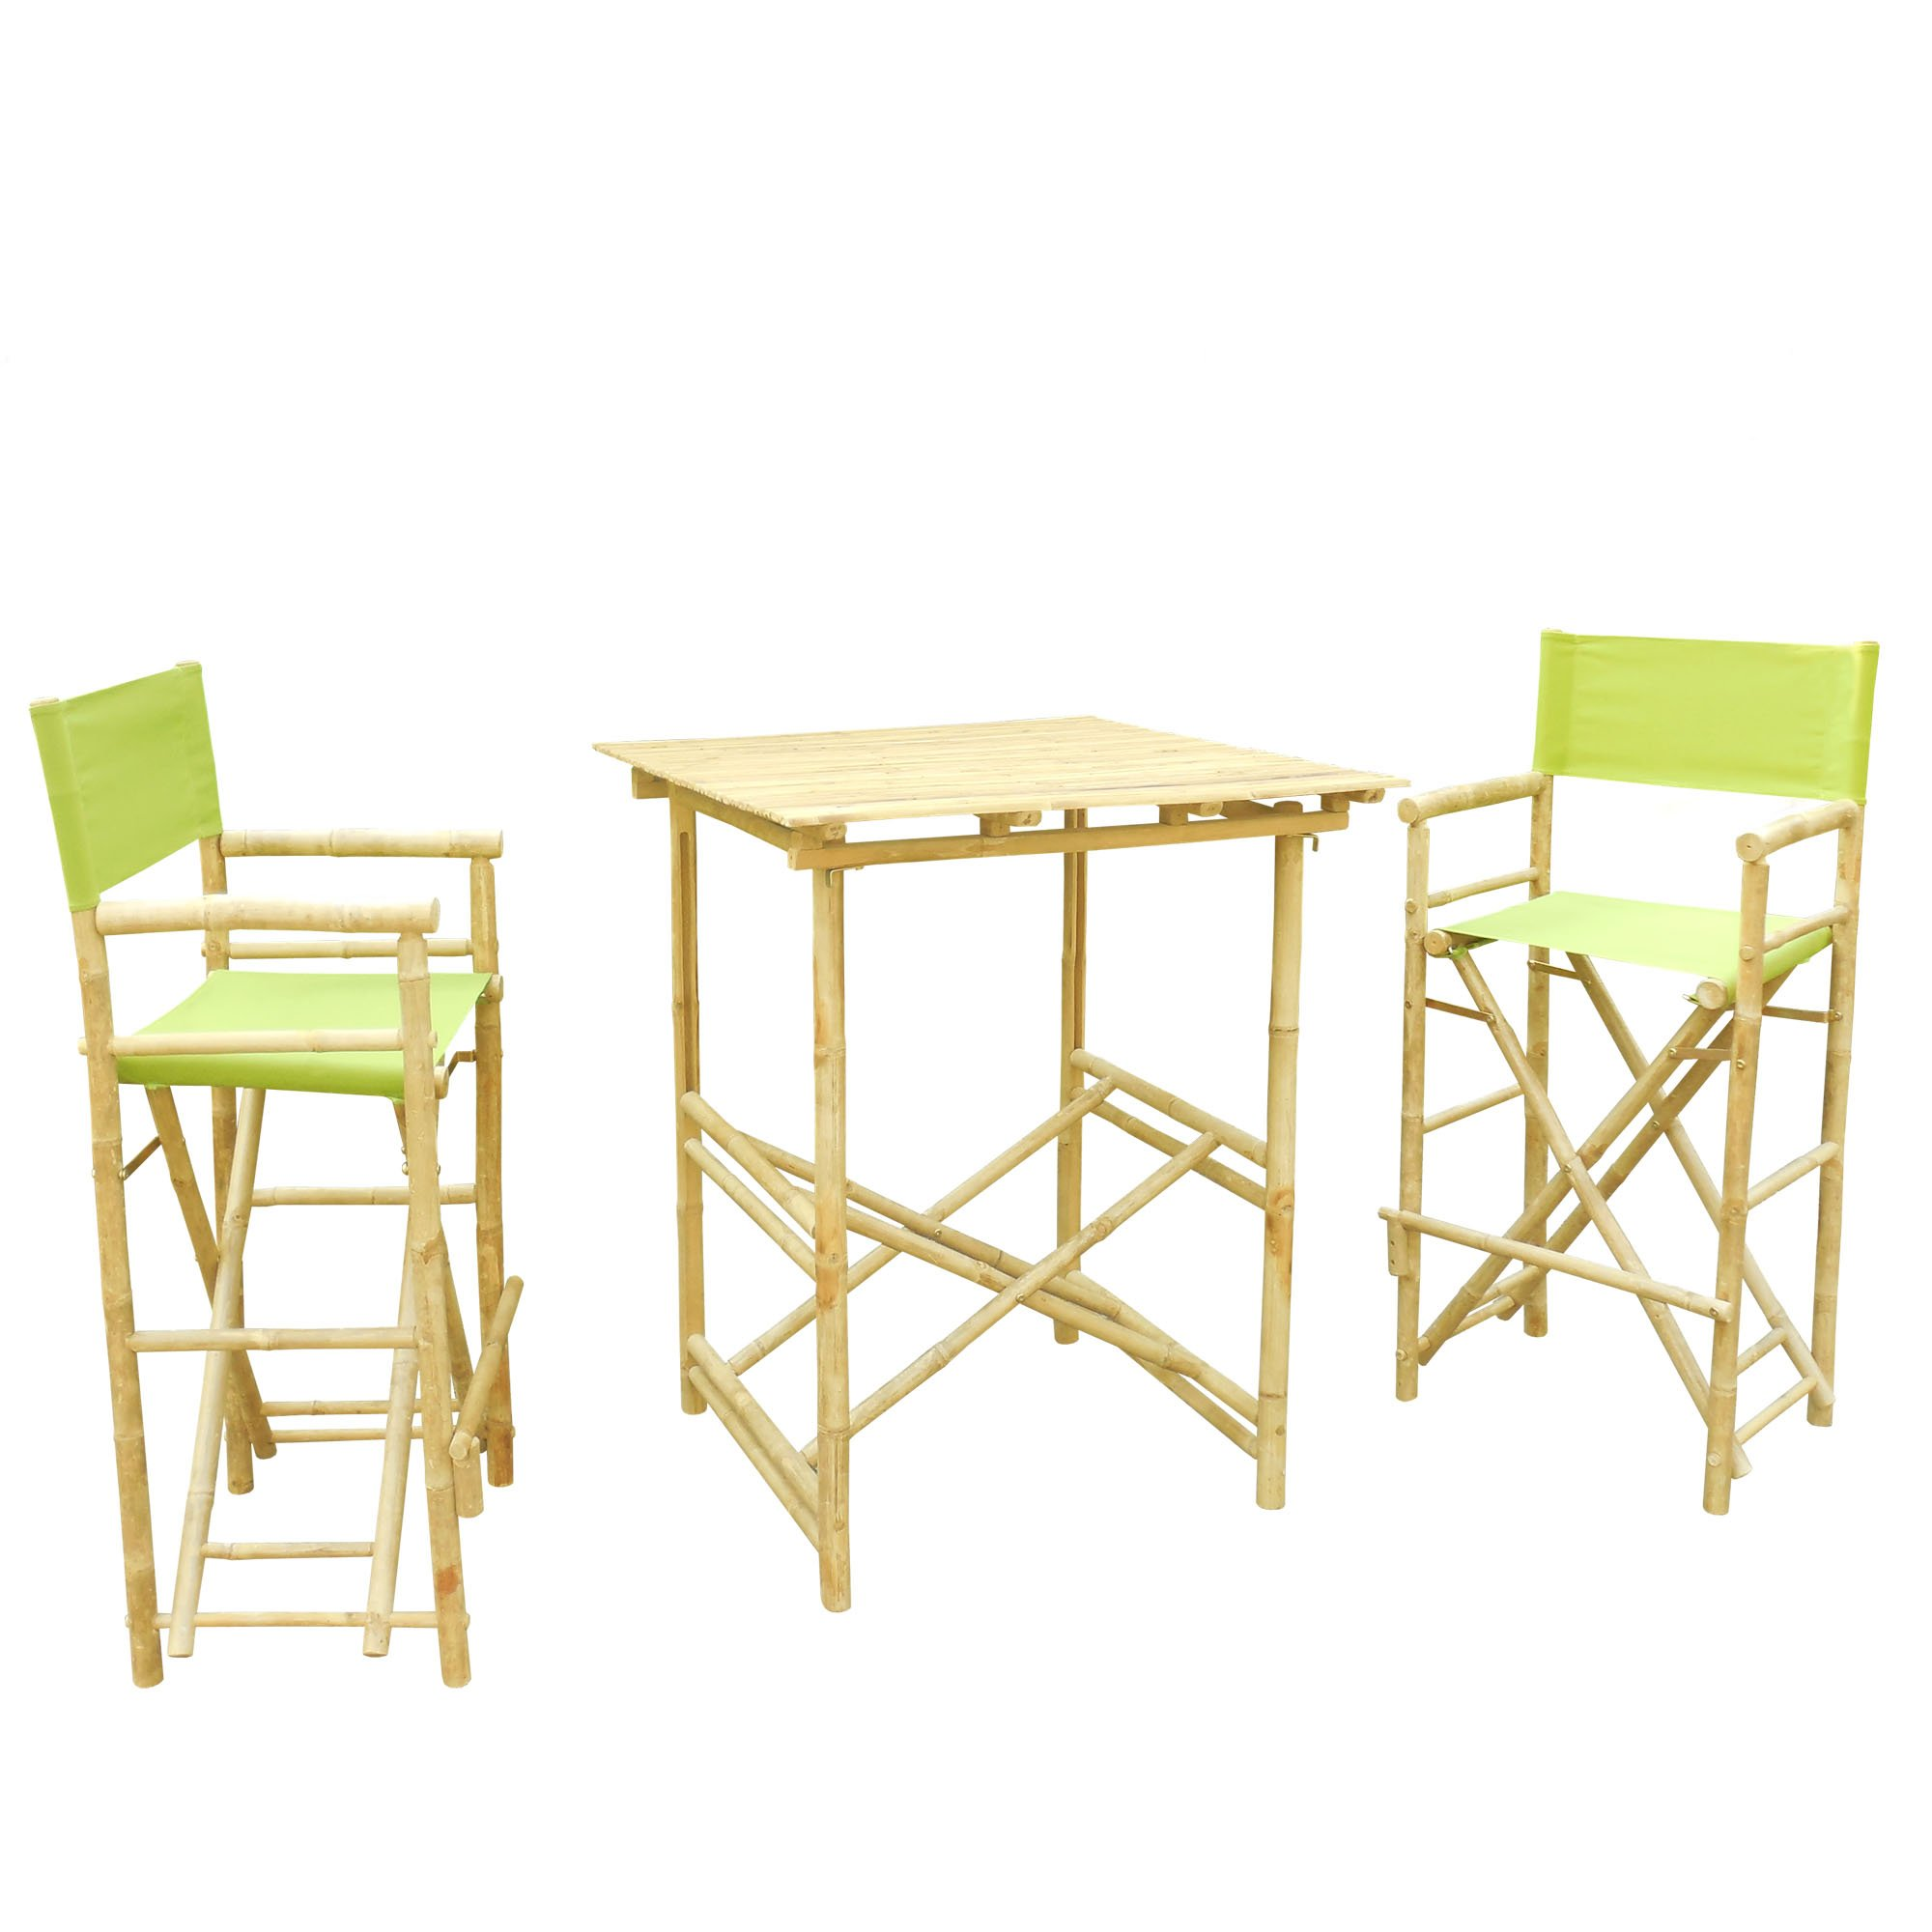 Zero Emission World Set of 1 High Table and 2 High Director Chairs, Green, Square